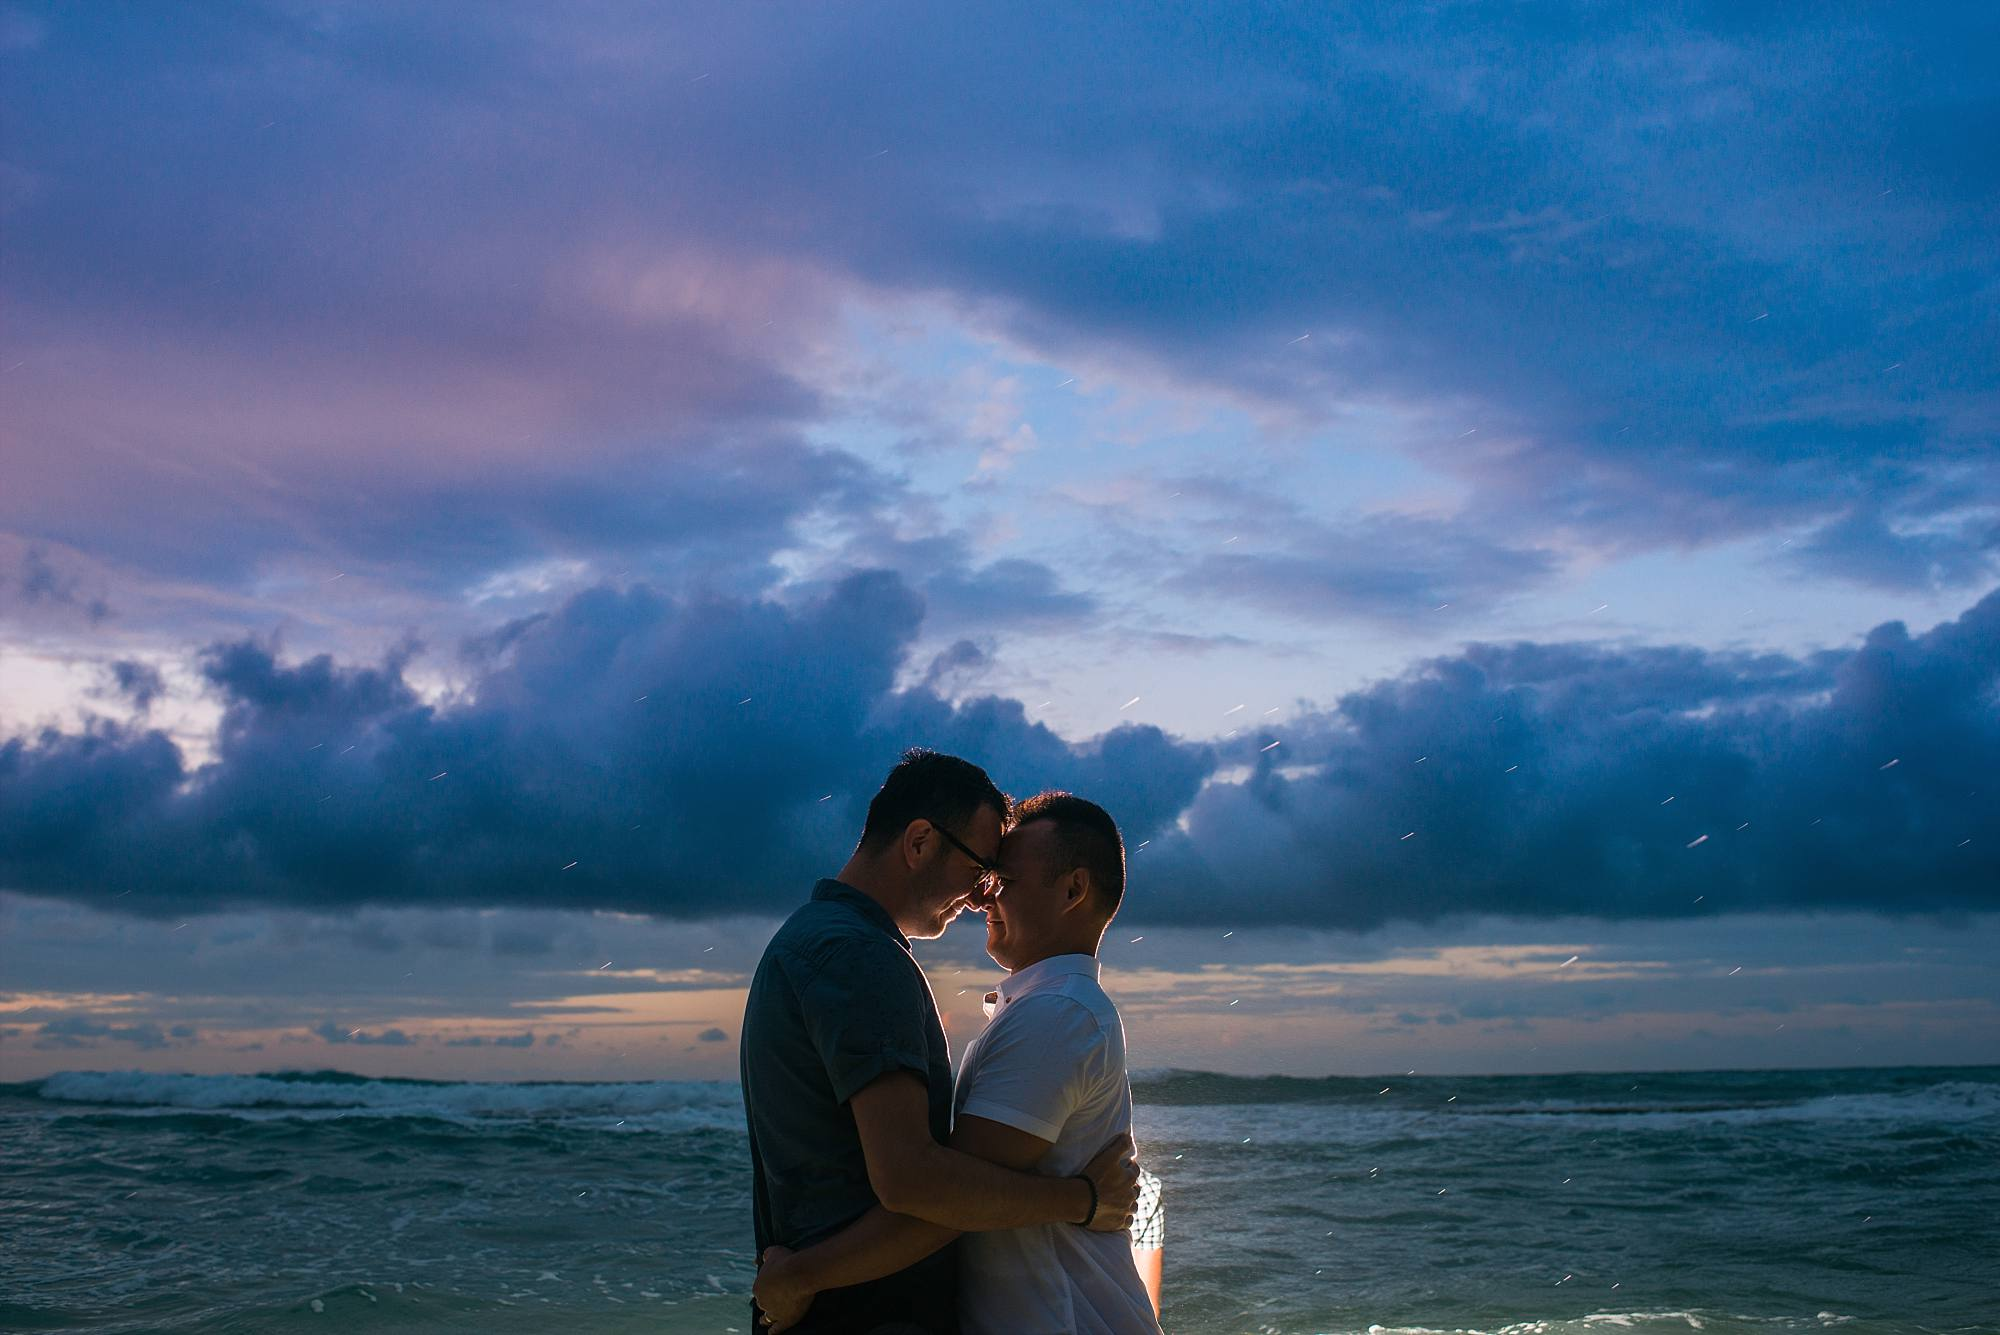 sunset , backlit shot Maui engagement photos, couple hugging, incredible clouds and the ocean